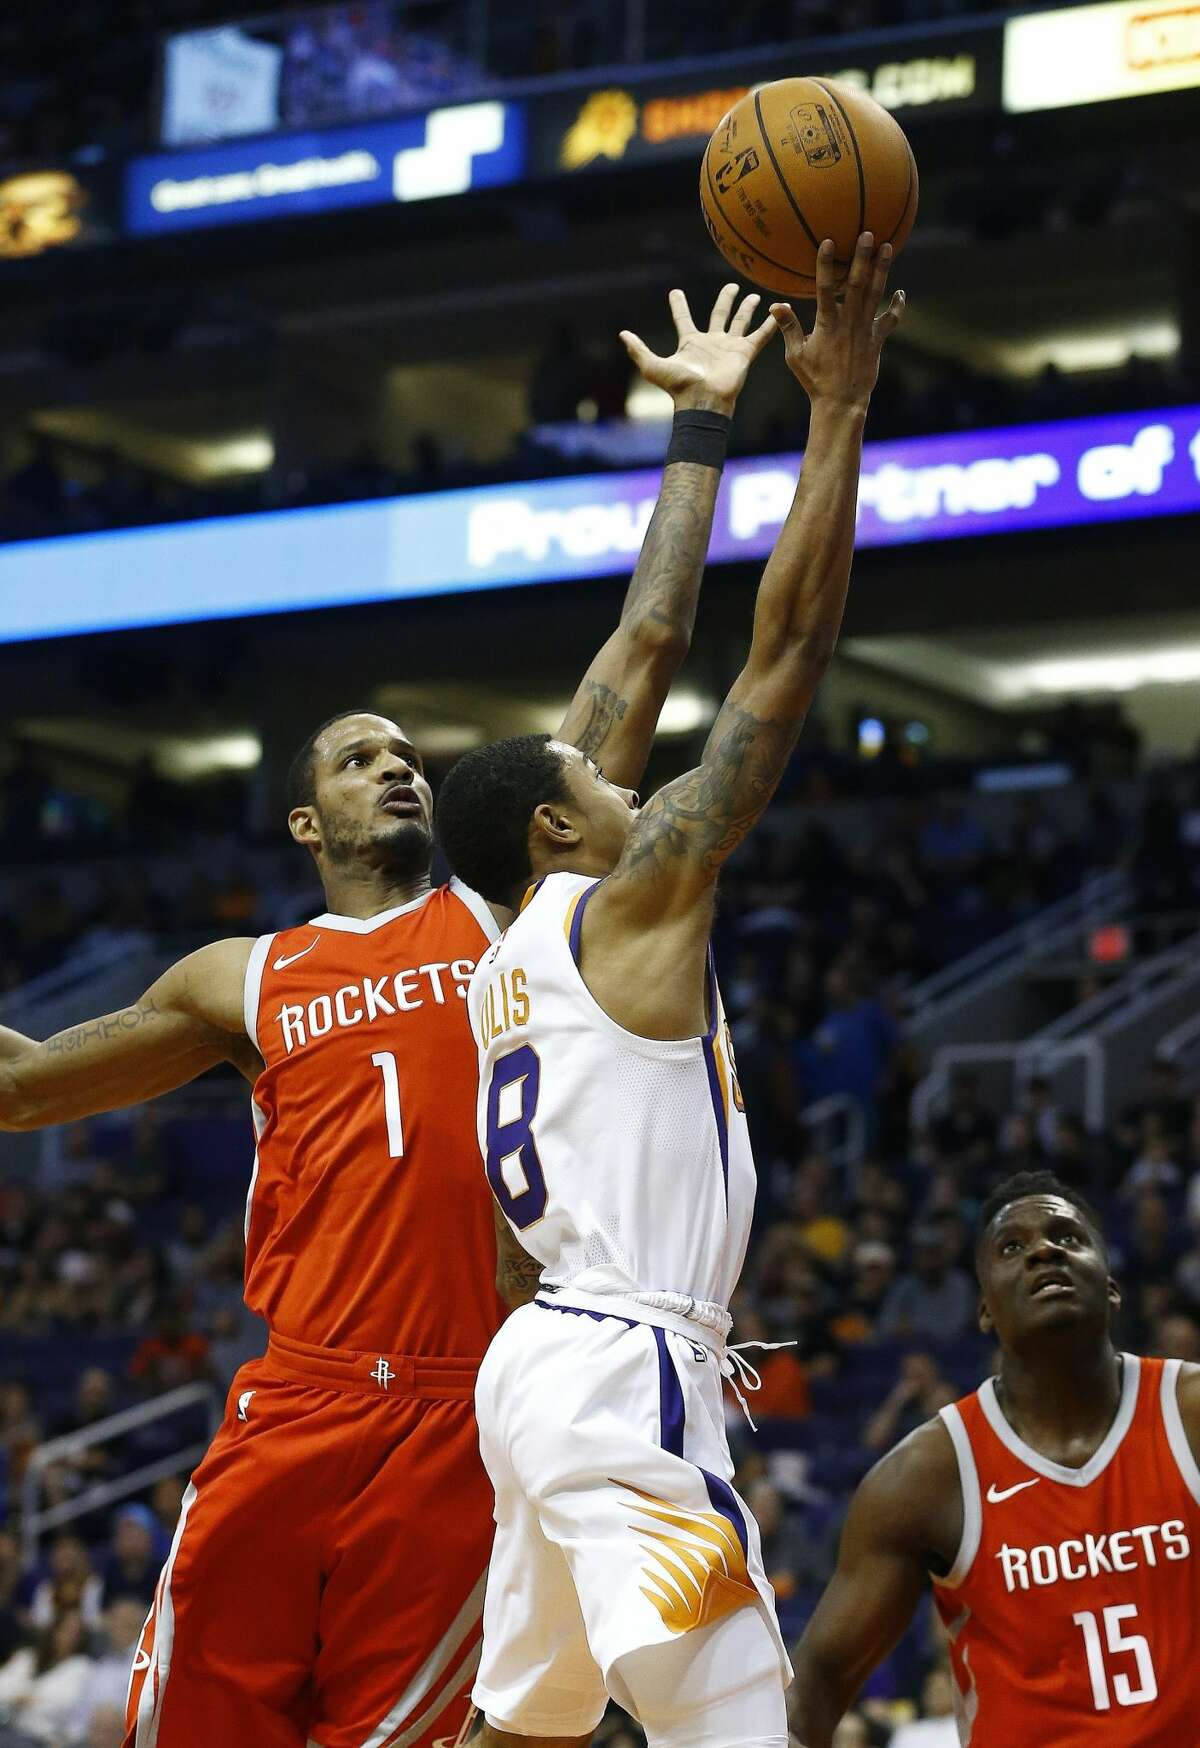 Houston Rockets forward Trevor Ariza (1) jumps to block the shot of Phoenix Suns guard Tyler Ulis (8) as Rockets center Clint Capela (15) watches during the second half of an NBA basketball game Thursday, Nov. 16, 2017, in Phoenix. The Rockets defeated the Suns 142-116. (AP Photo/Ross D. Franklin)